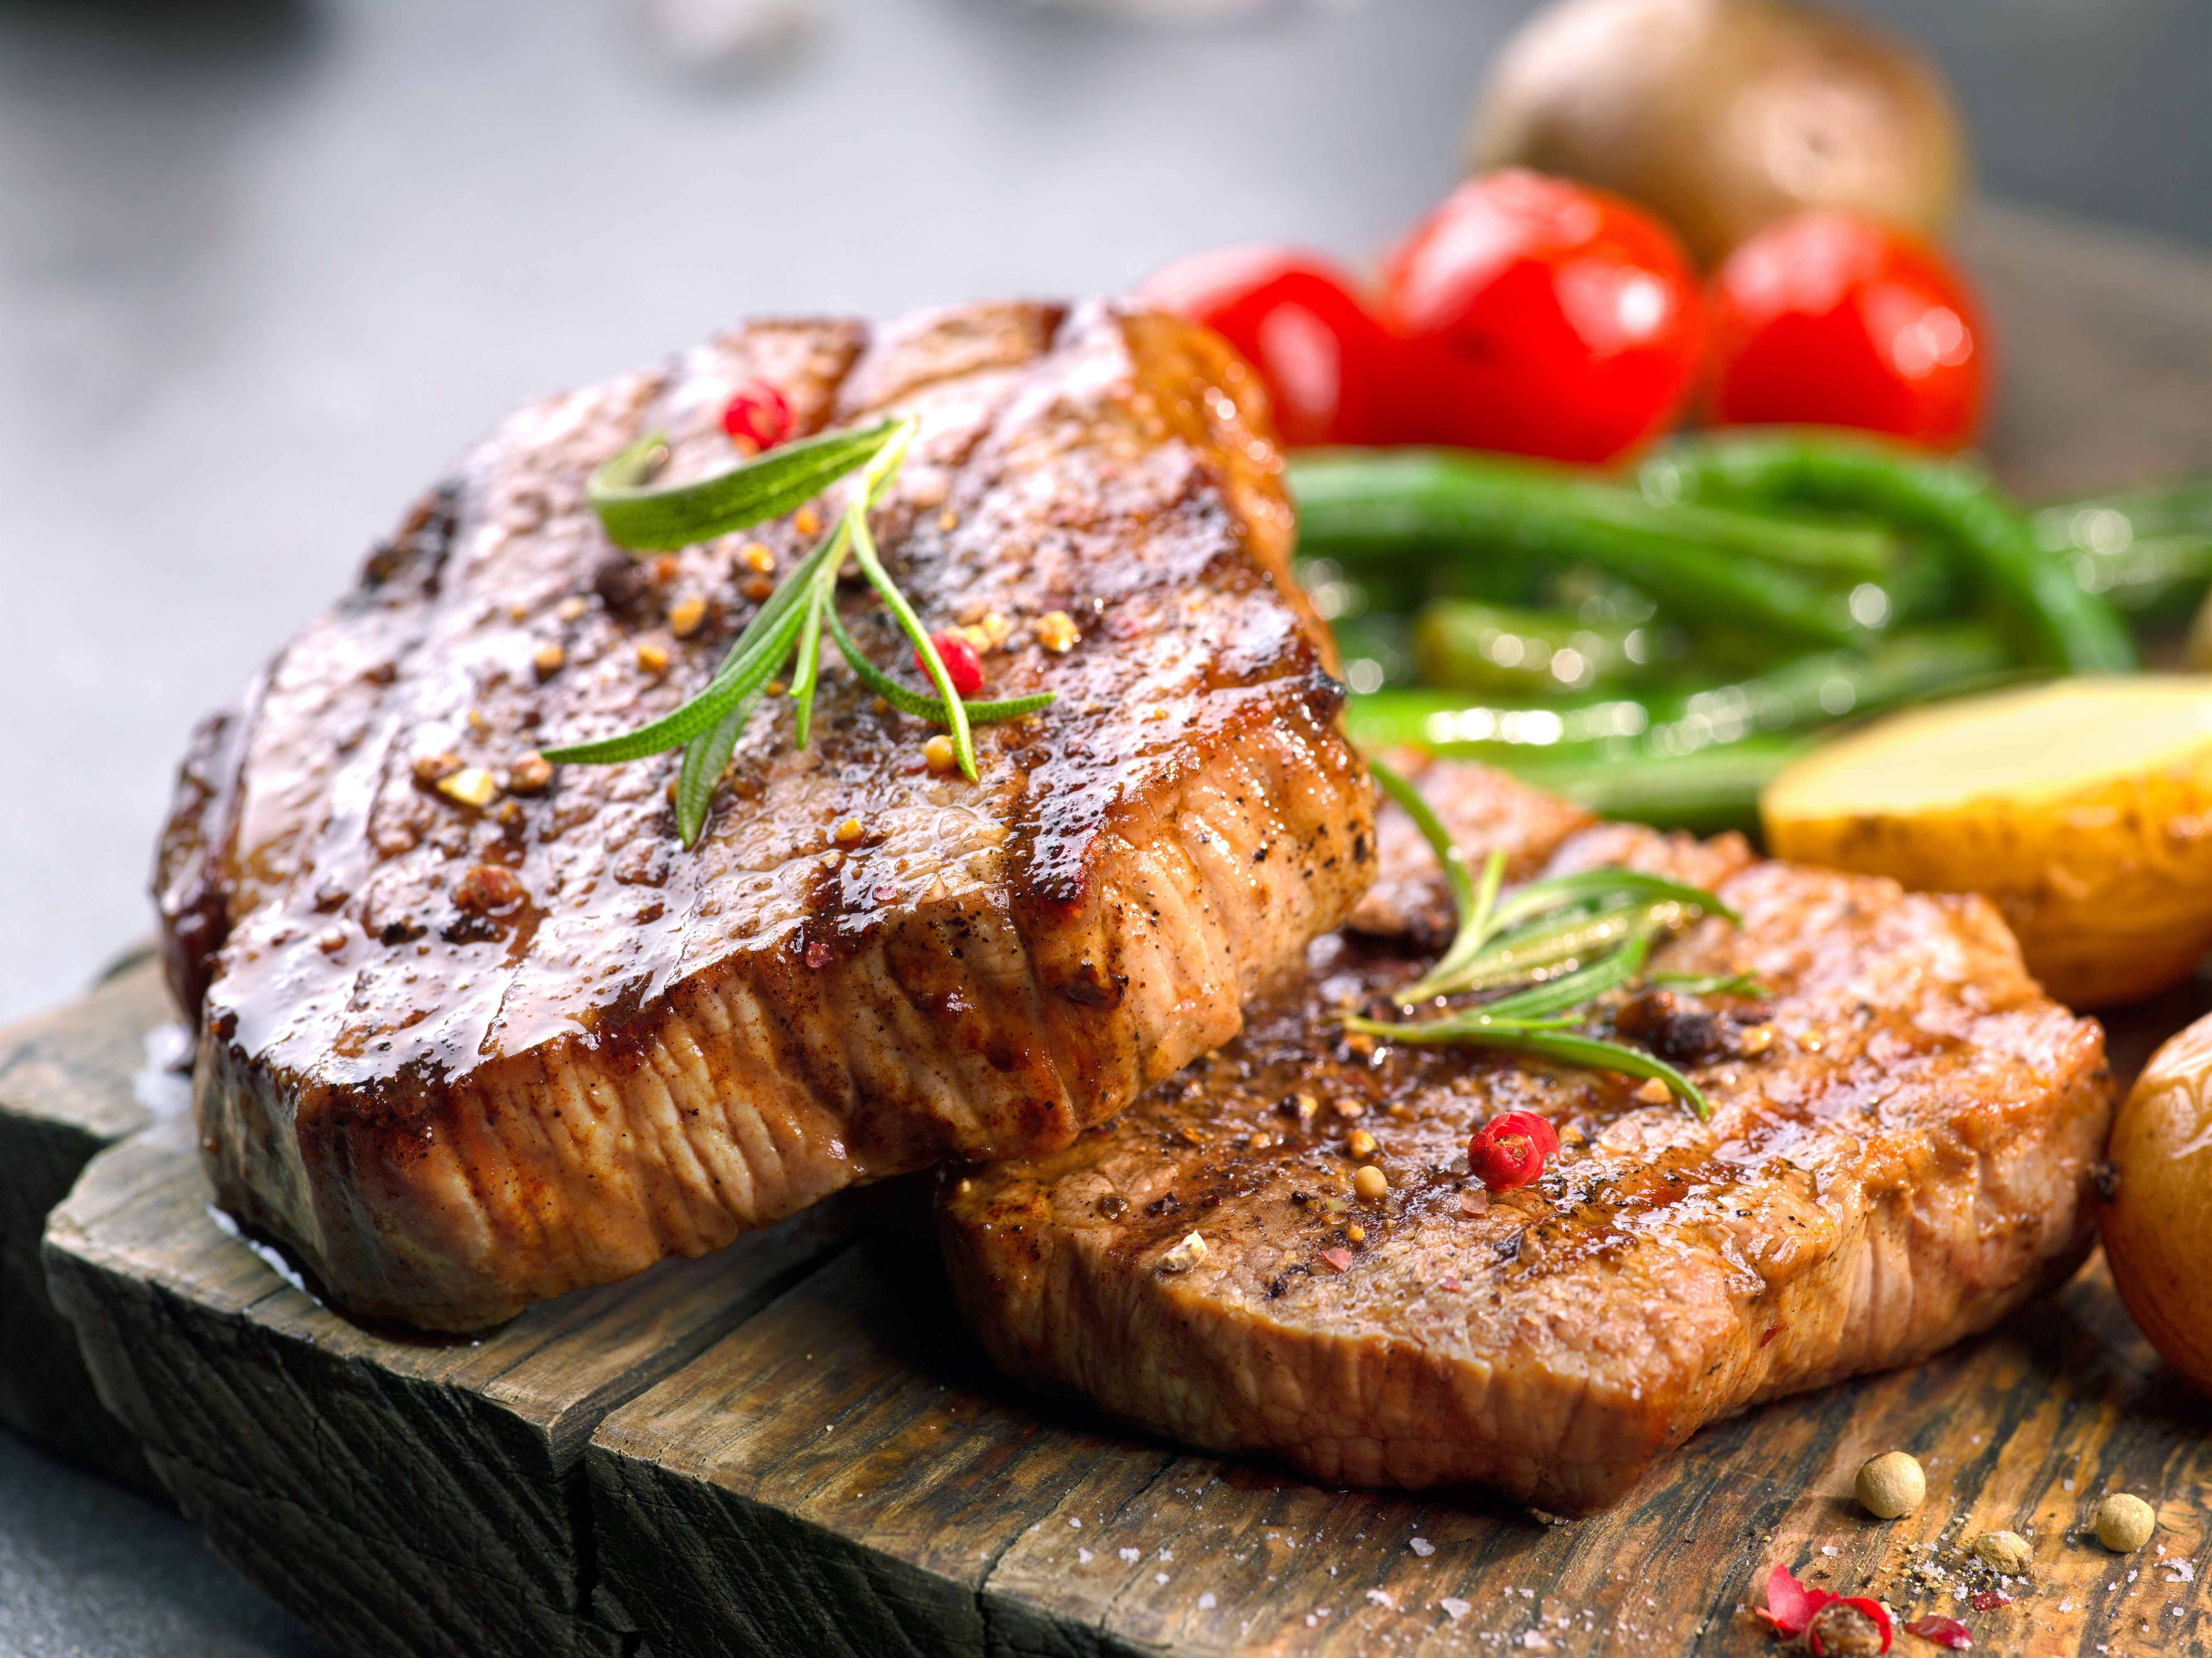 Seared Sirloin and Roasted Veggies: Here is your romantic ...